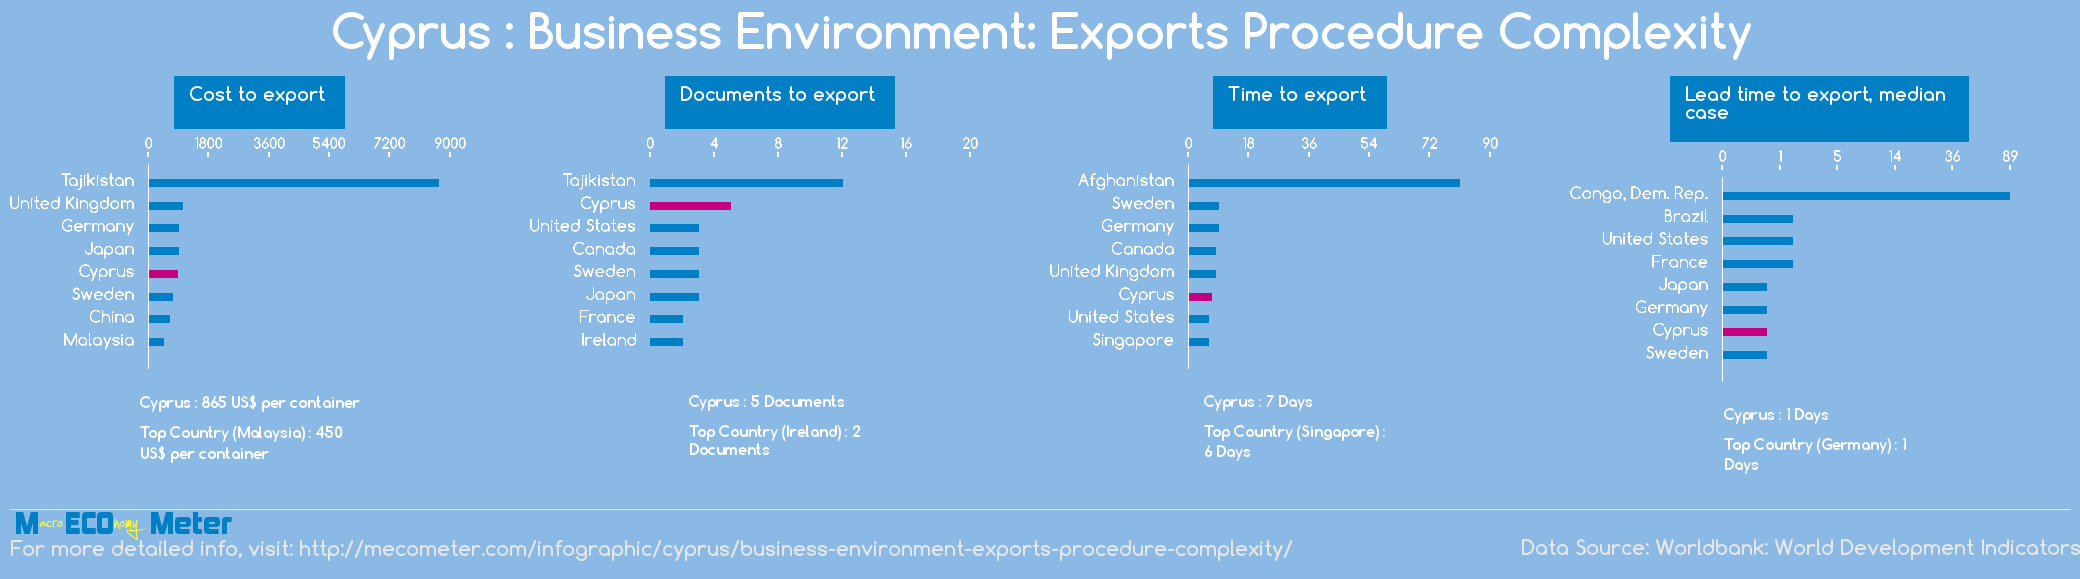 Cyprus : Business Environment: Exports Procedure Complexity